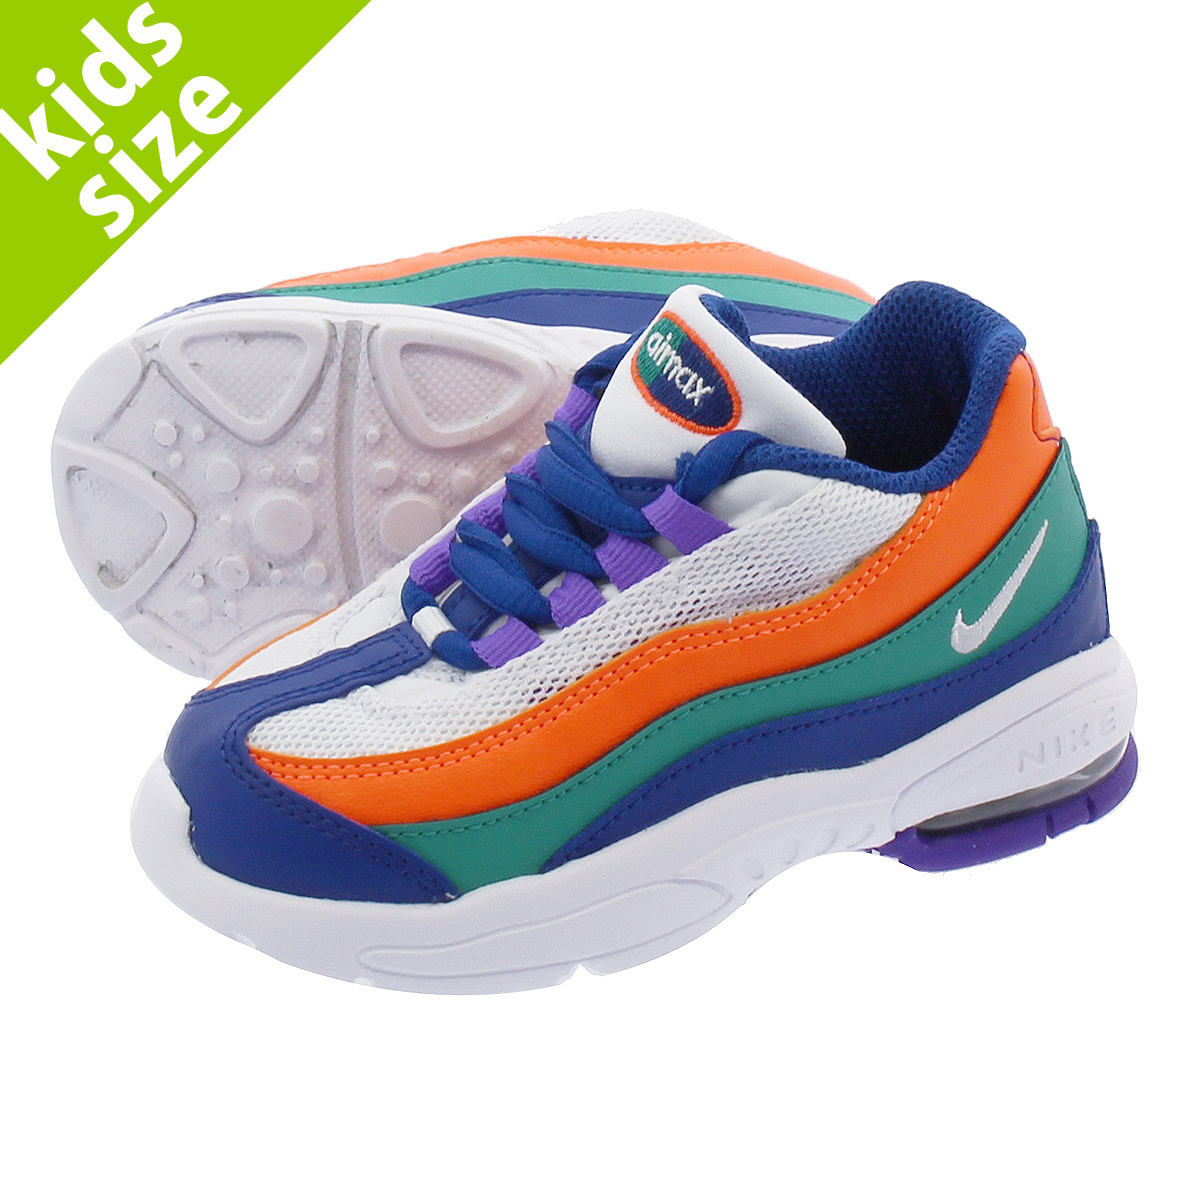 sports shoes fd702 706e6 NIKE AIR MAX 95 TD Kie Ney AMAX 95 TD WHITE/BLUE/ORANGE/GREEN 905,462-412